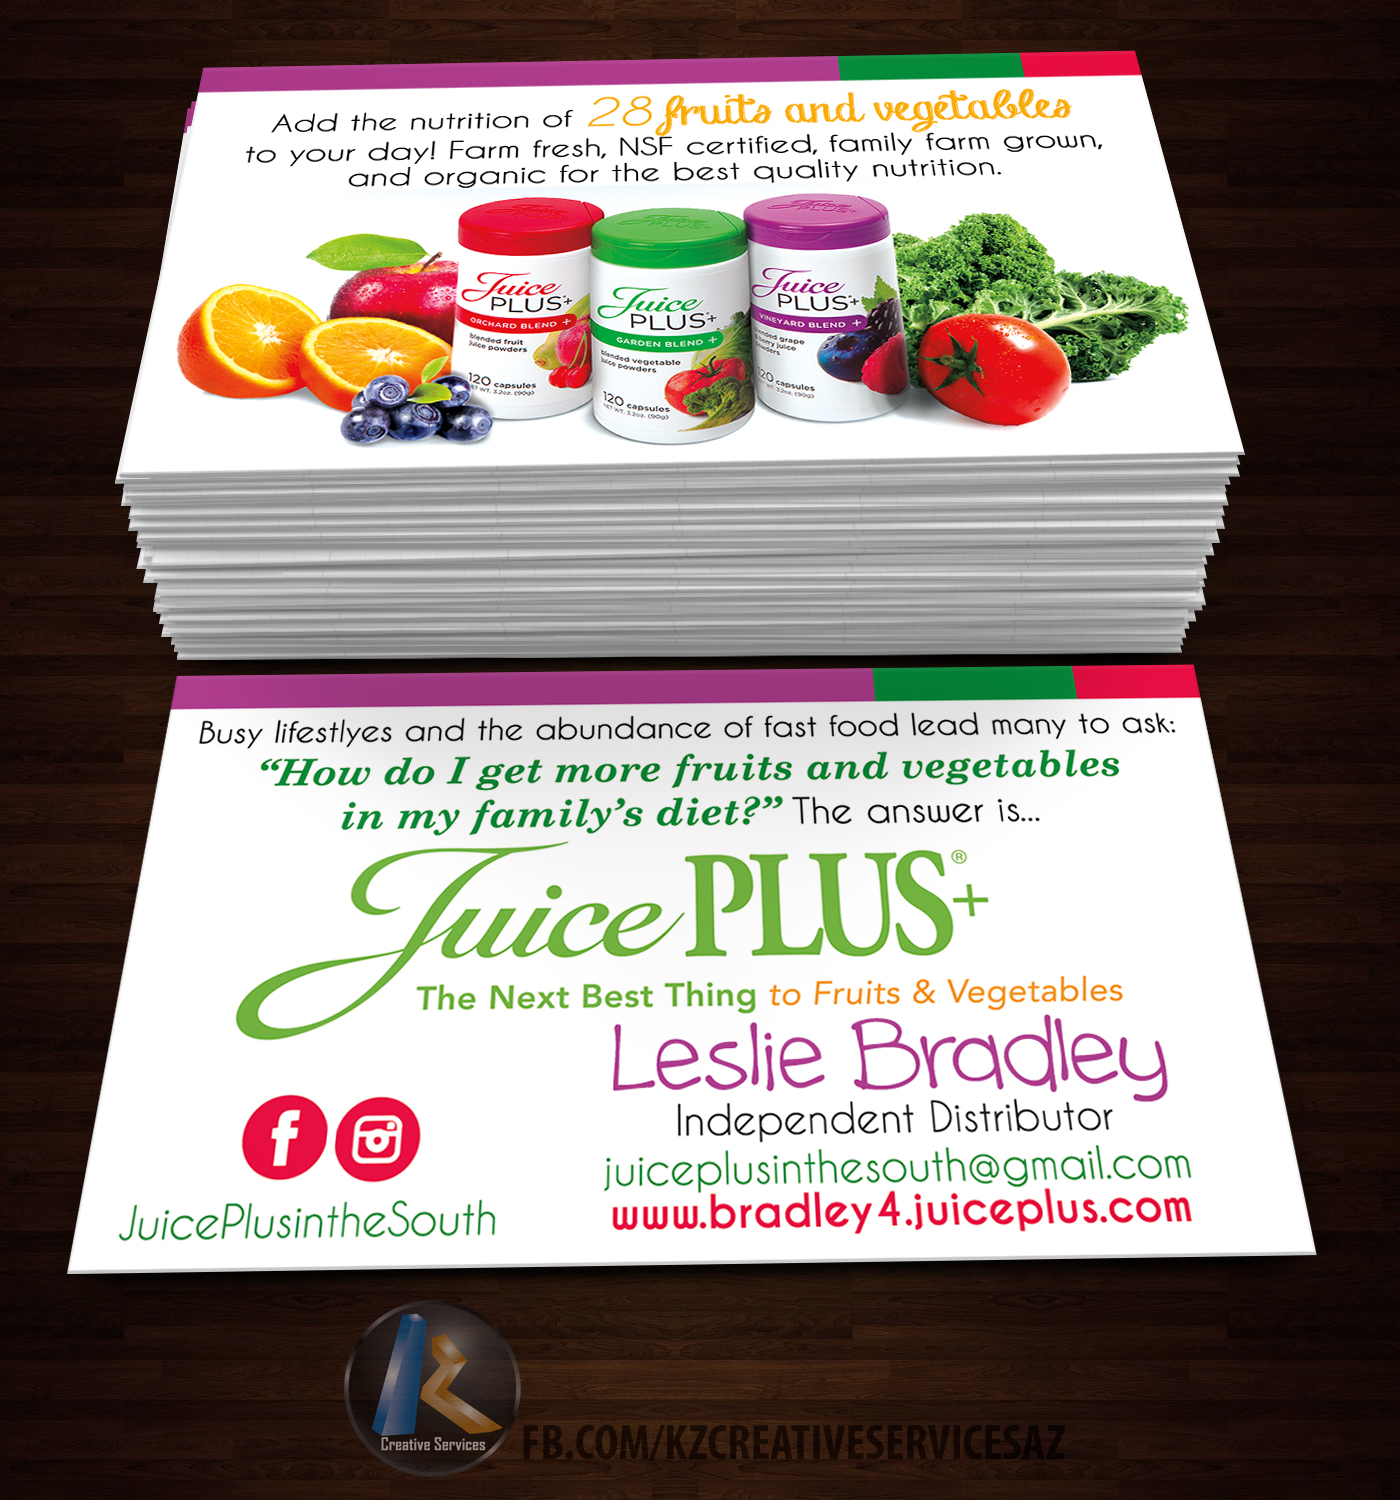 Juicy plus business cards style 1 kz creative services online juicy plus business cards style 1 colourmoves